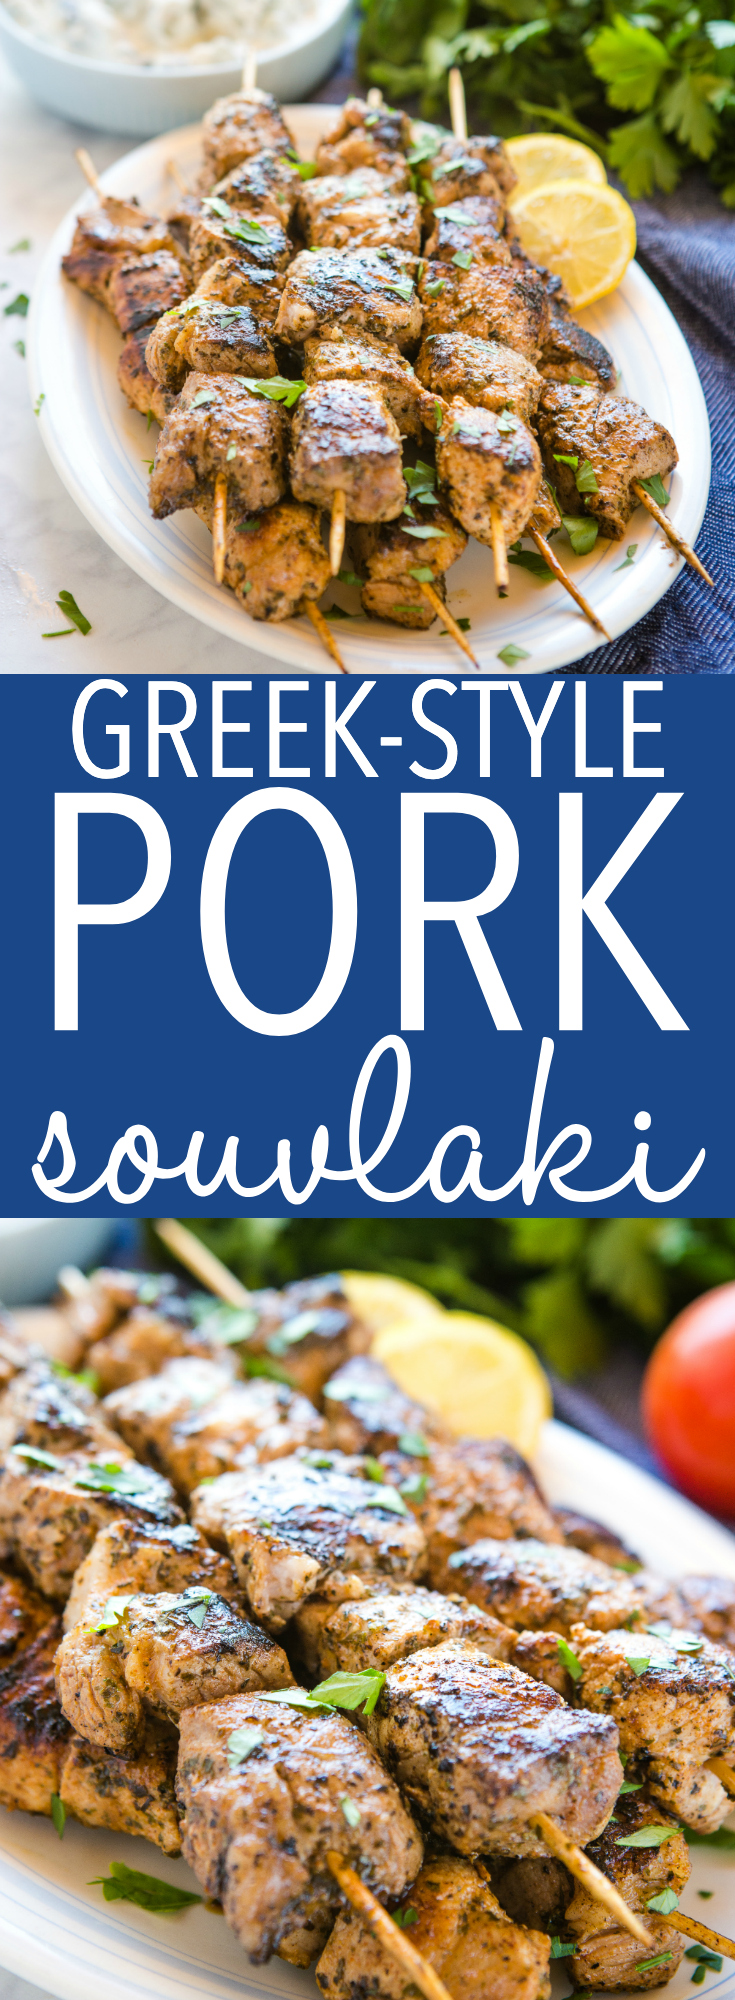 These Easy Greek-Style Pork Souvlaki Skewers are a delicious main dish that's easy to make and perfect for summer! Enjoy them with tzatziki! Recipe from thebusybaker.ca! #greek #food #recipe #tzatziki #souvlaki #gyros #streetfood #holiday #summer #grilling #pork #lemon #herbs #homemade #barbecue via @busybakerblog